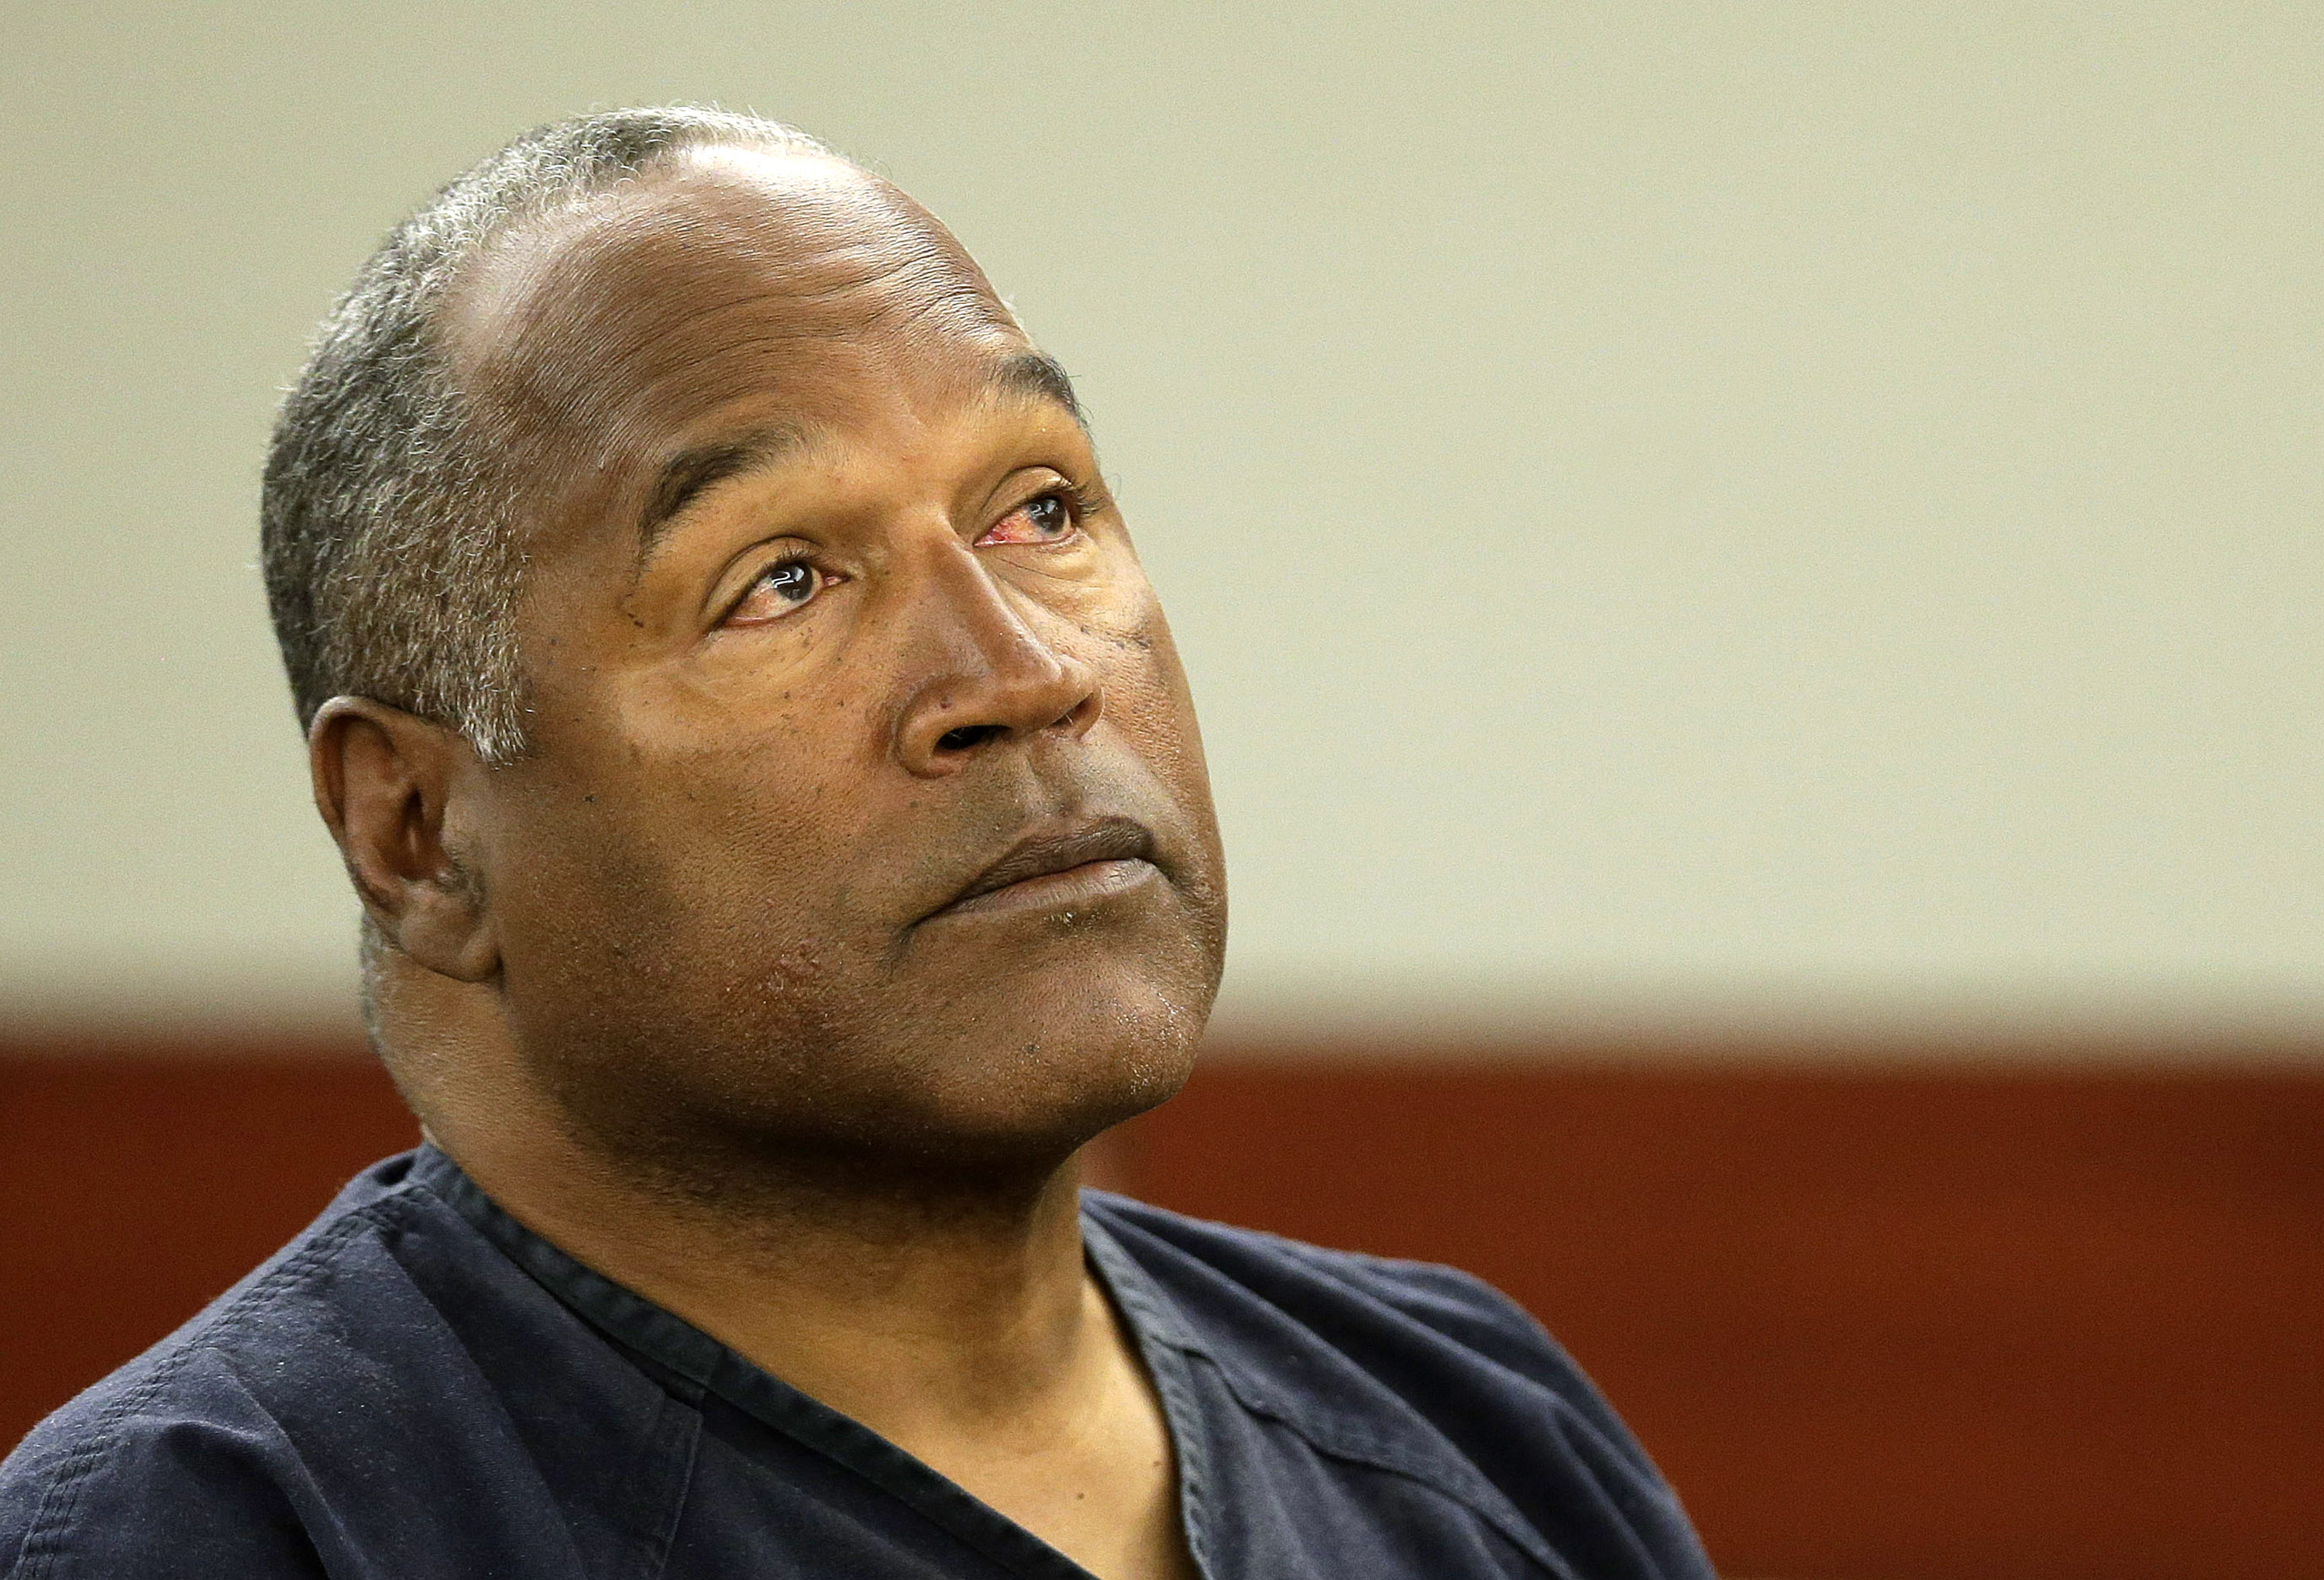 O.J. Simpson listens to testimony at an evidentiary hearing in Clark County District Court May 13, 2013 in Las Vegas, Nevada.